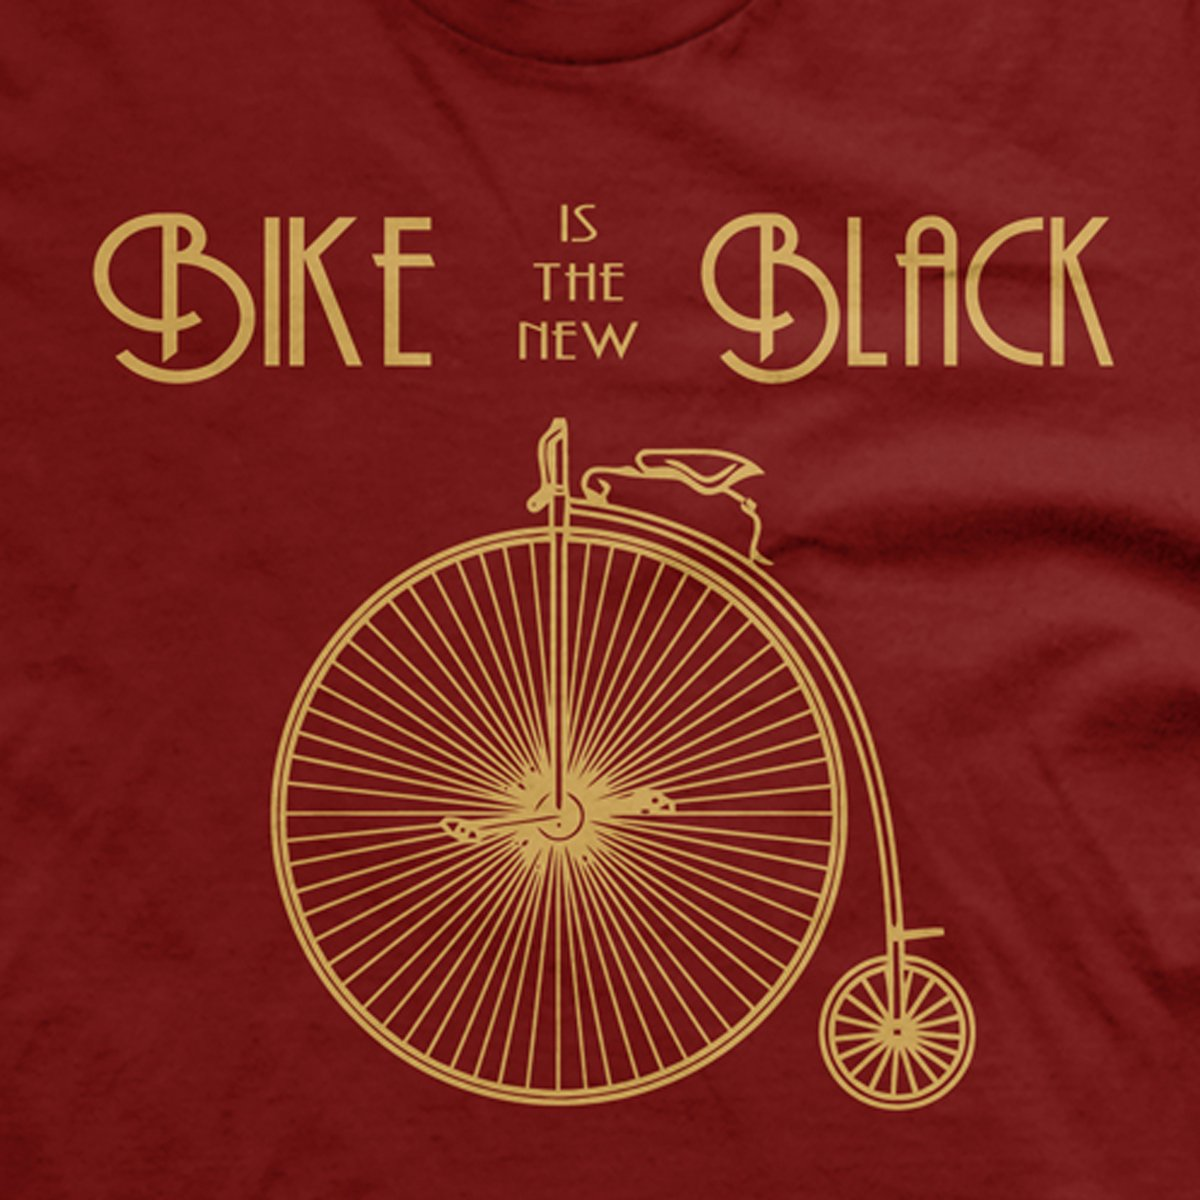 Bike is the New Black t-shirt